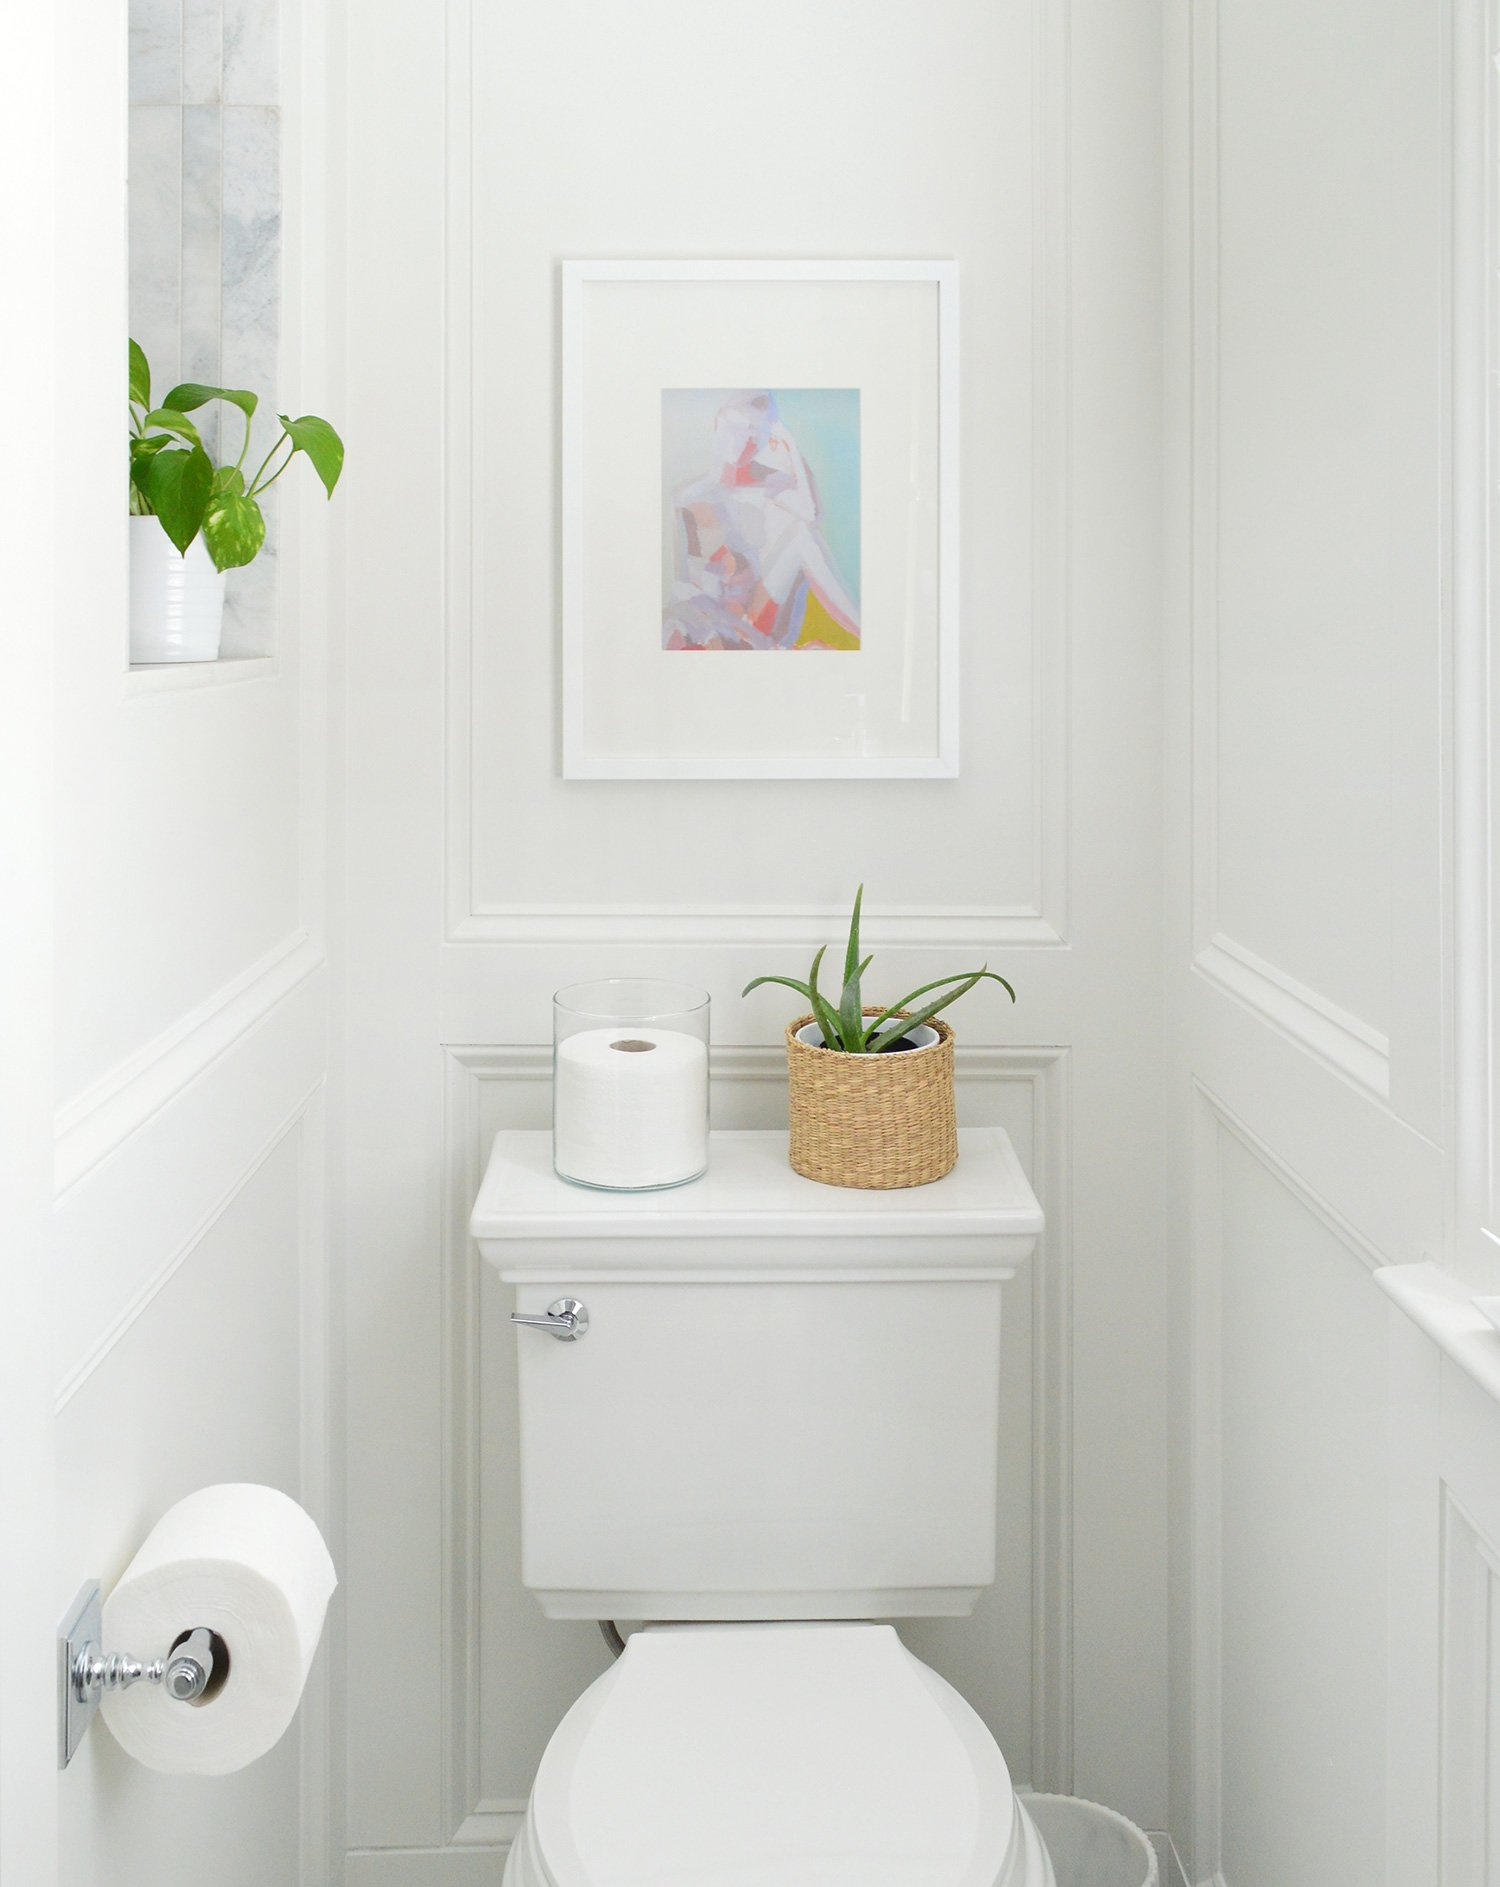 toilet nook details in bathroom